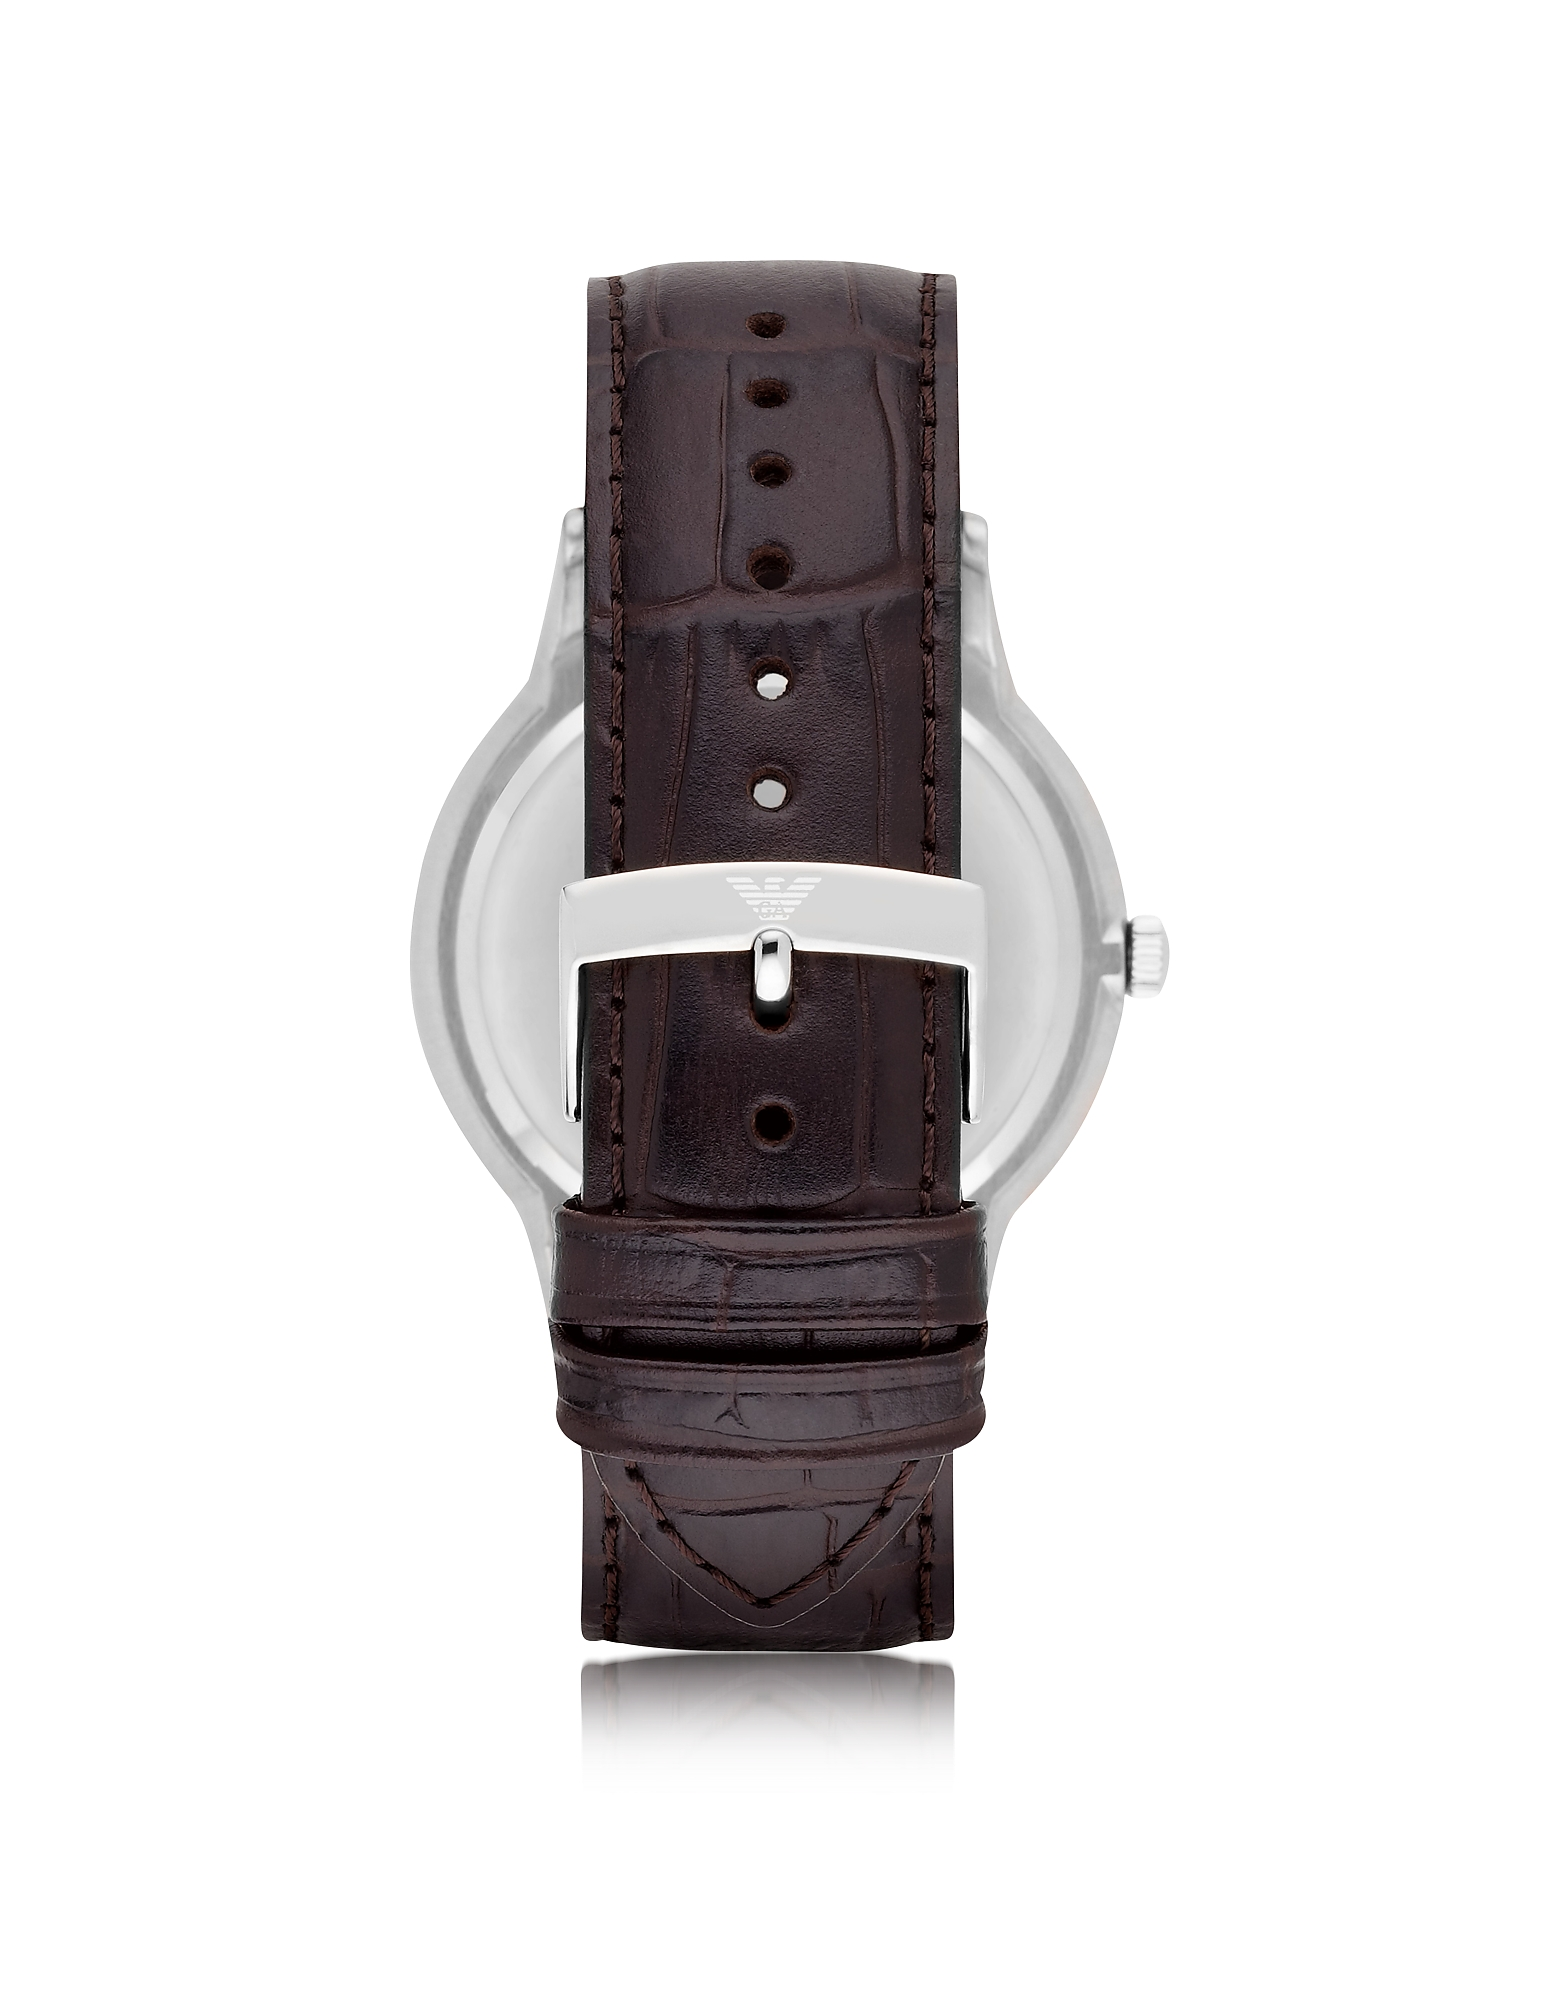 Black Dial Stainless Steel Men's Watch w/Leather Strap от Forzieri.com INT